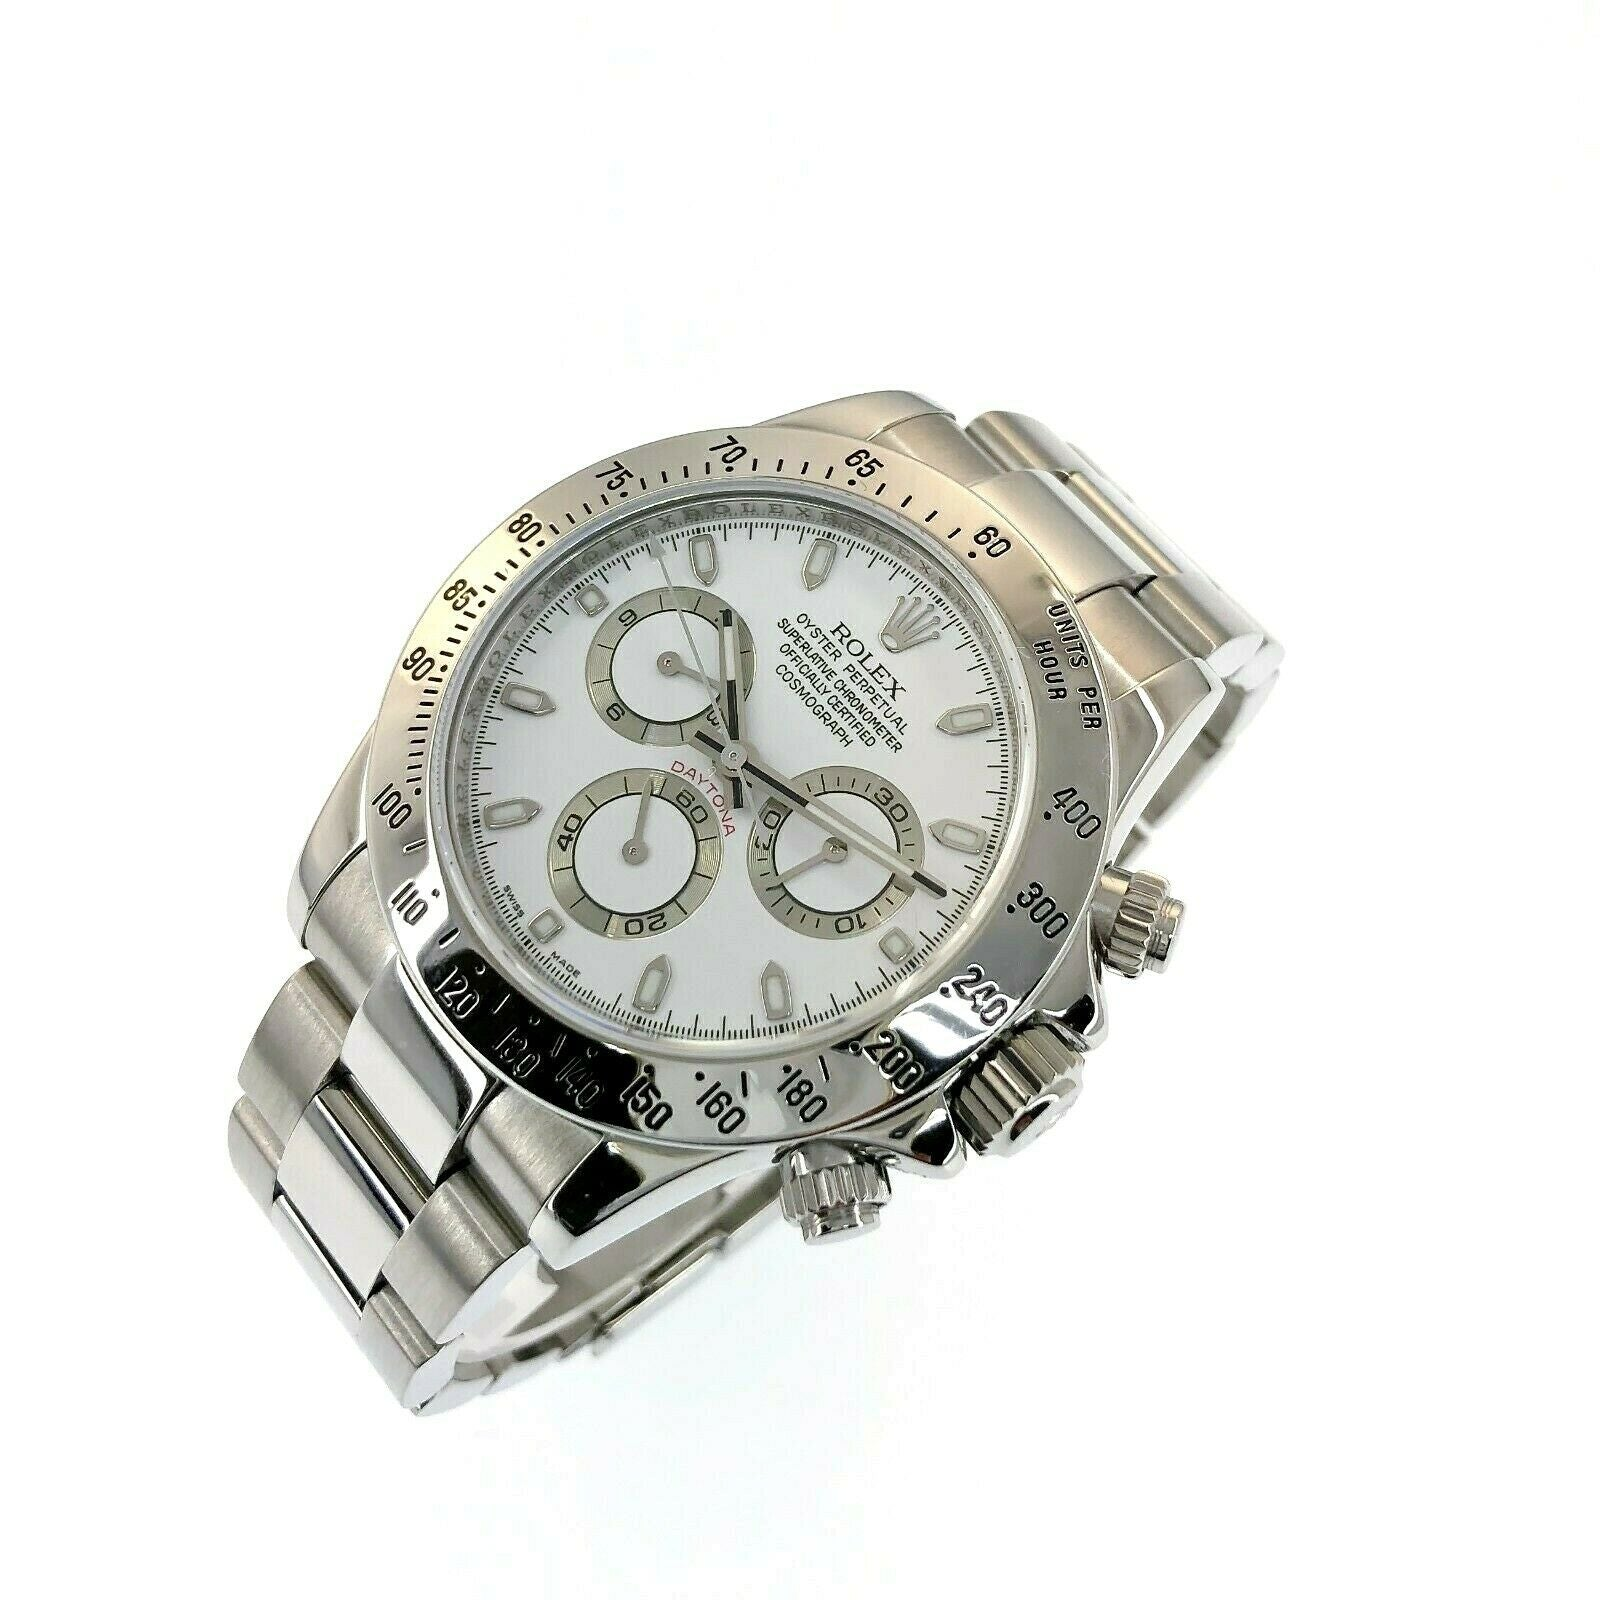 Rolex Cosmograph Daytona 40mm Stainless Steel Watch Ref 116520 Box & Papers